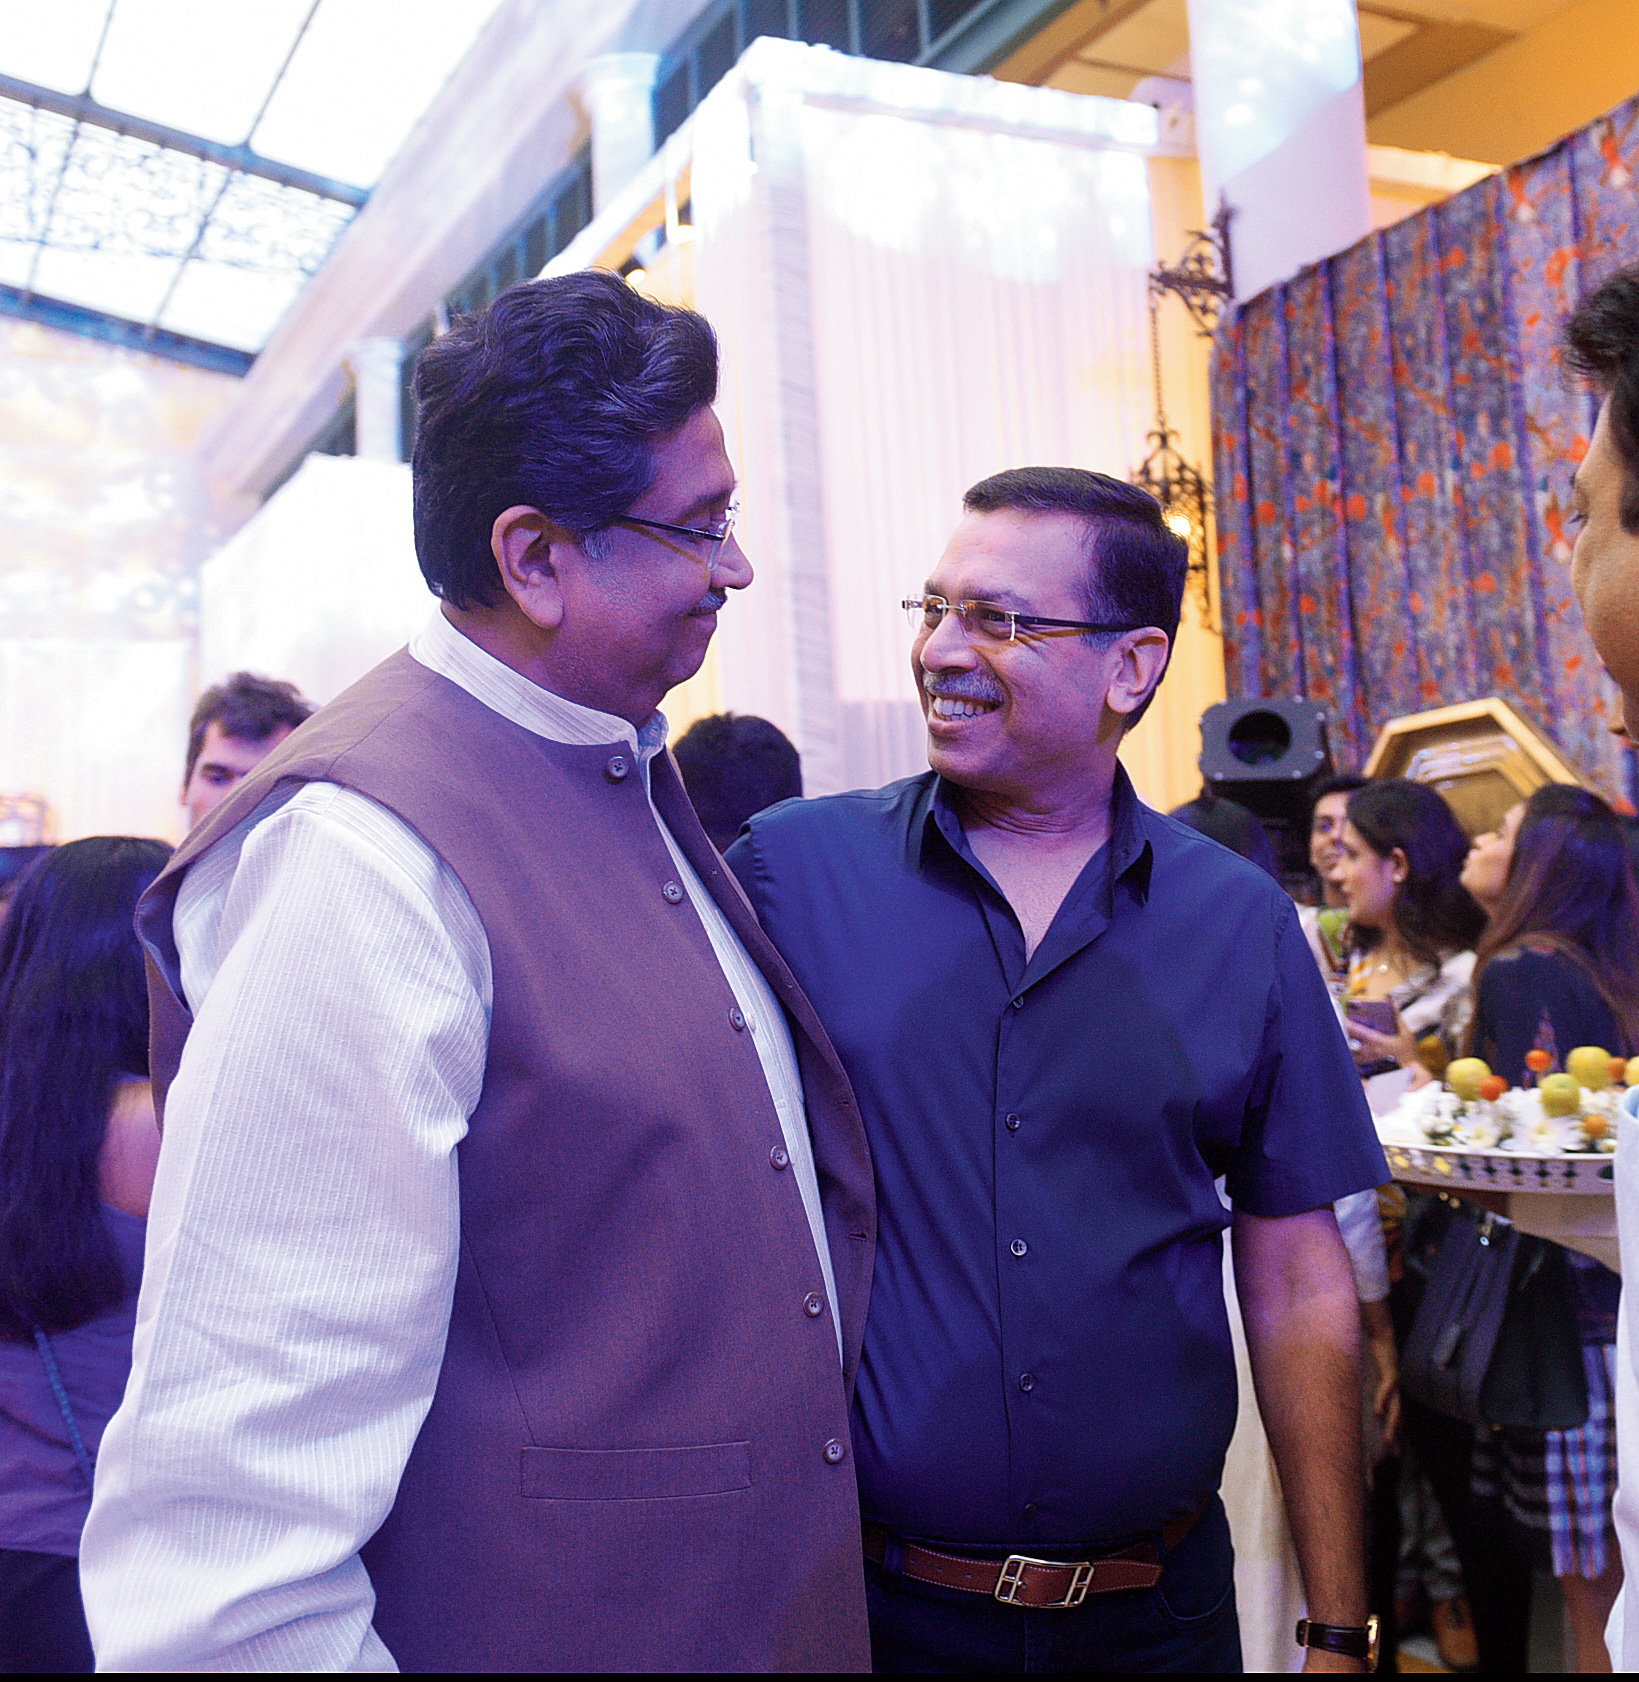 """Sanjiv Goenka dropped by at Wedding Diaries with his wife Preeti, son Shashwat and daughter-in-law Shivika on Saturday evening and was greeted by Harsh Neotia. """"Madhu always does a great job. So I enjoy coming here and looking at the stuff and my wife enjoys spending money!"""" said Sanjiv with a chuckle. """"When she conceives it, we are the butt of her mood swings. We have gone through that!"""" Harsh said with a smile, but was all praise for the venture. """"I think it is spectacular. Quite different. I think The India Story has a slightly more grunge element to it. This one has a little more oomph."""""""